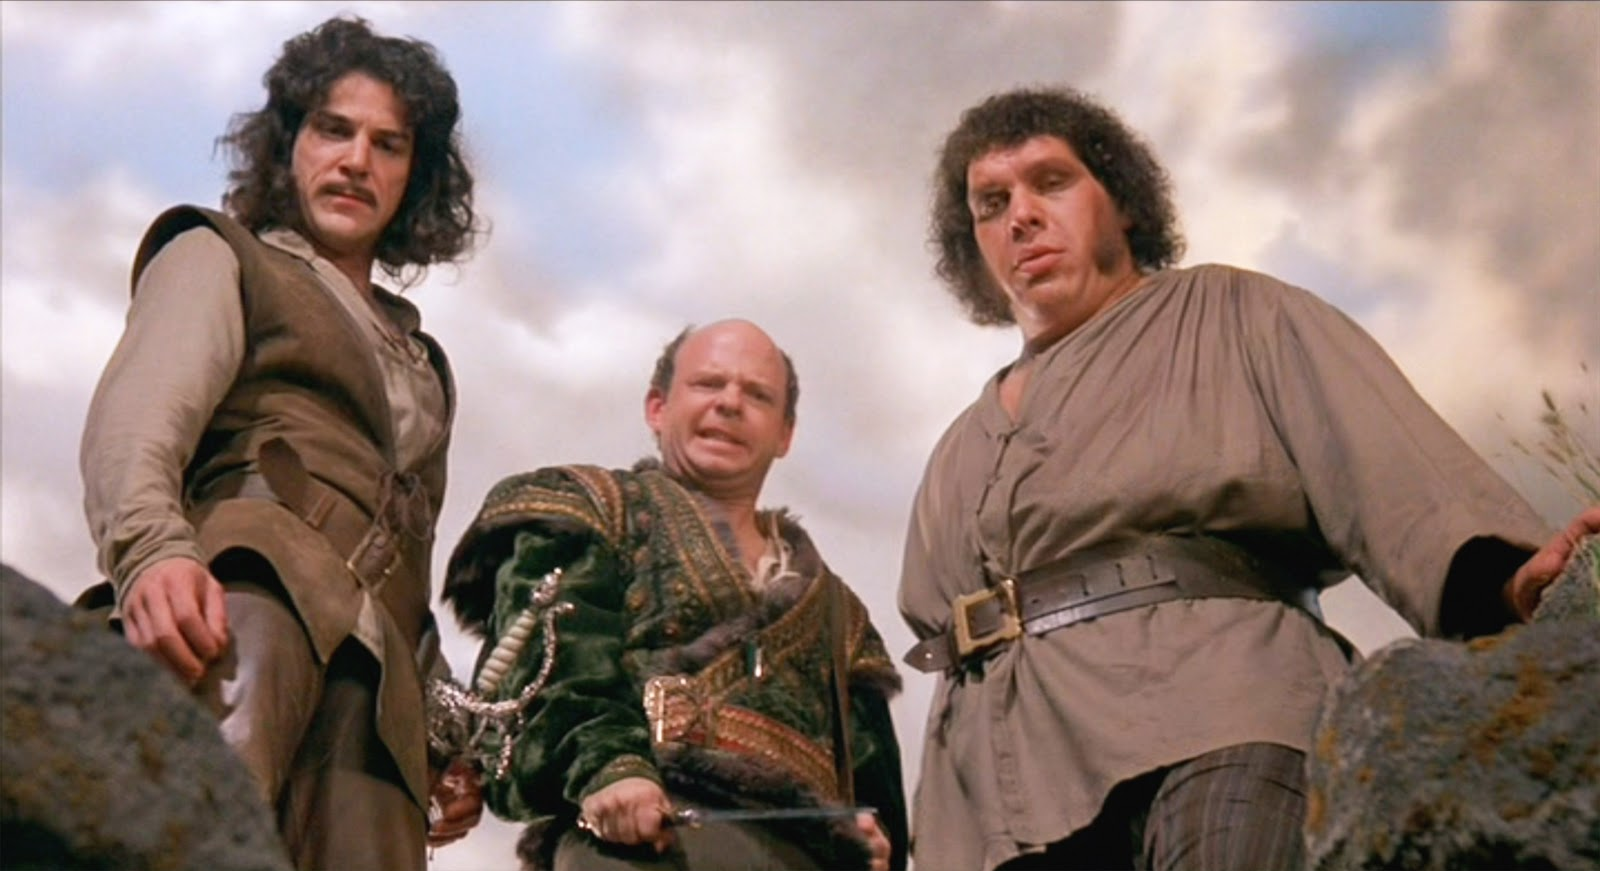 Mandy Patinkin, Wallace Shawn, and André the Giant gazing down at a foe.